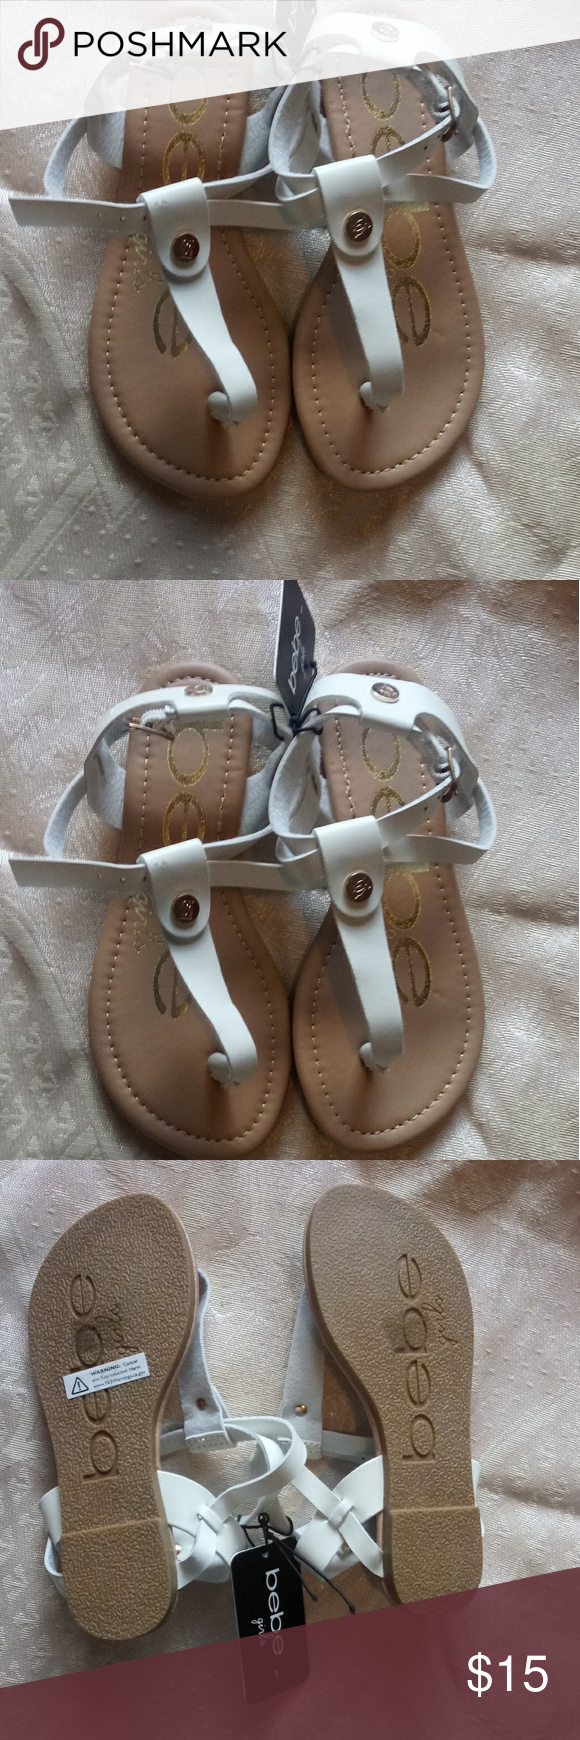 Bebe girl sandals Bebe girl sandals white and tan size 1youth new with tag no box fits a 4 or 5 yearold Shoes Sandals & Flip Flops